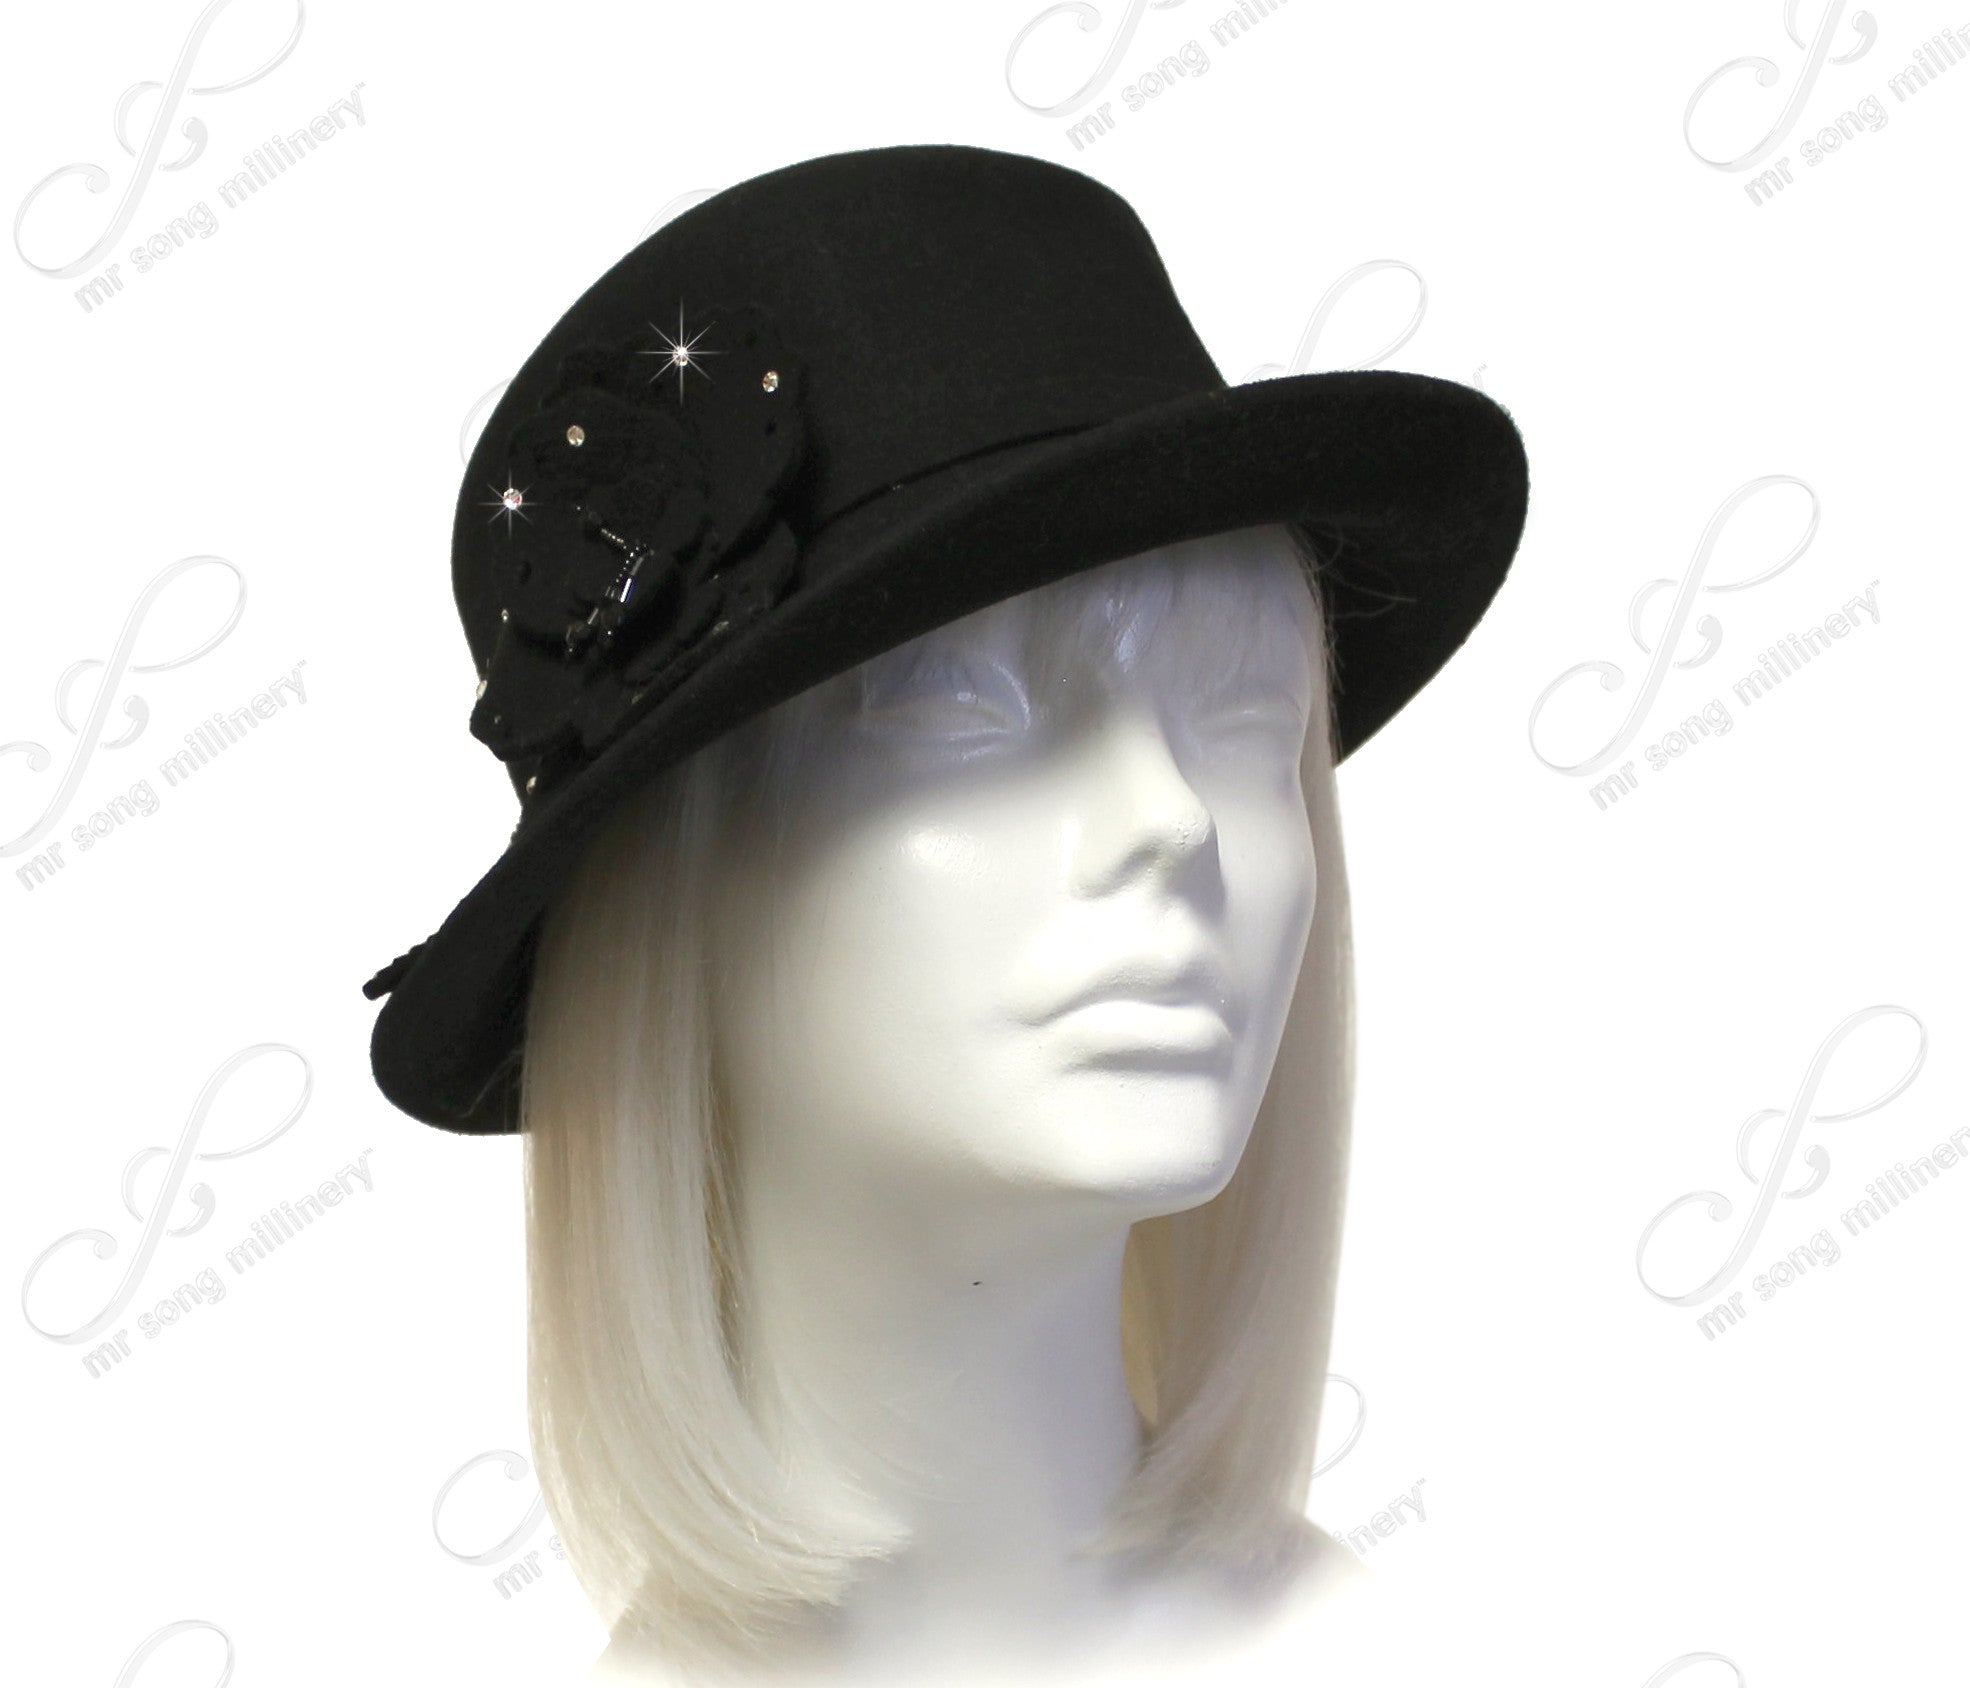 Mr. Song Millinery Softest Felt Bucket Fedora Cloche Hat With Bias Brim - Black